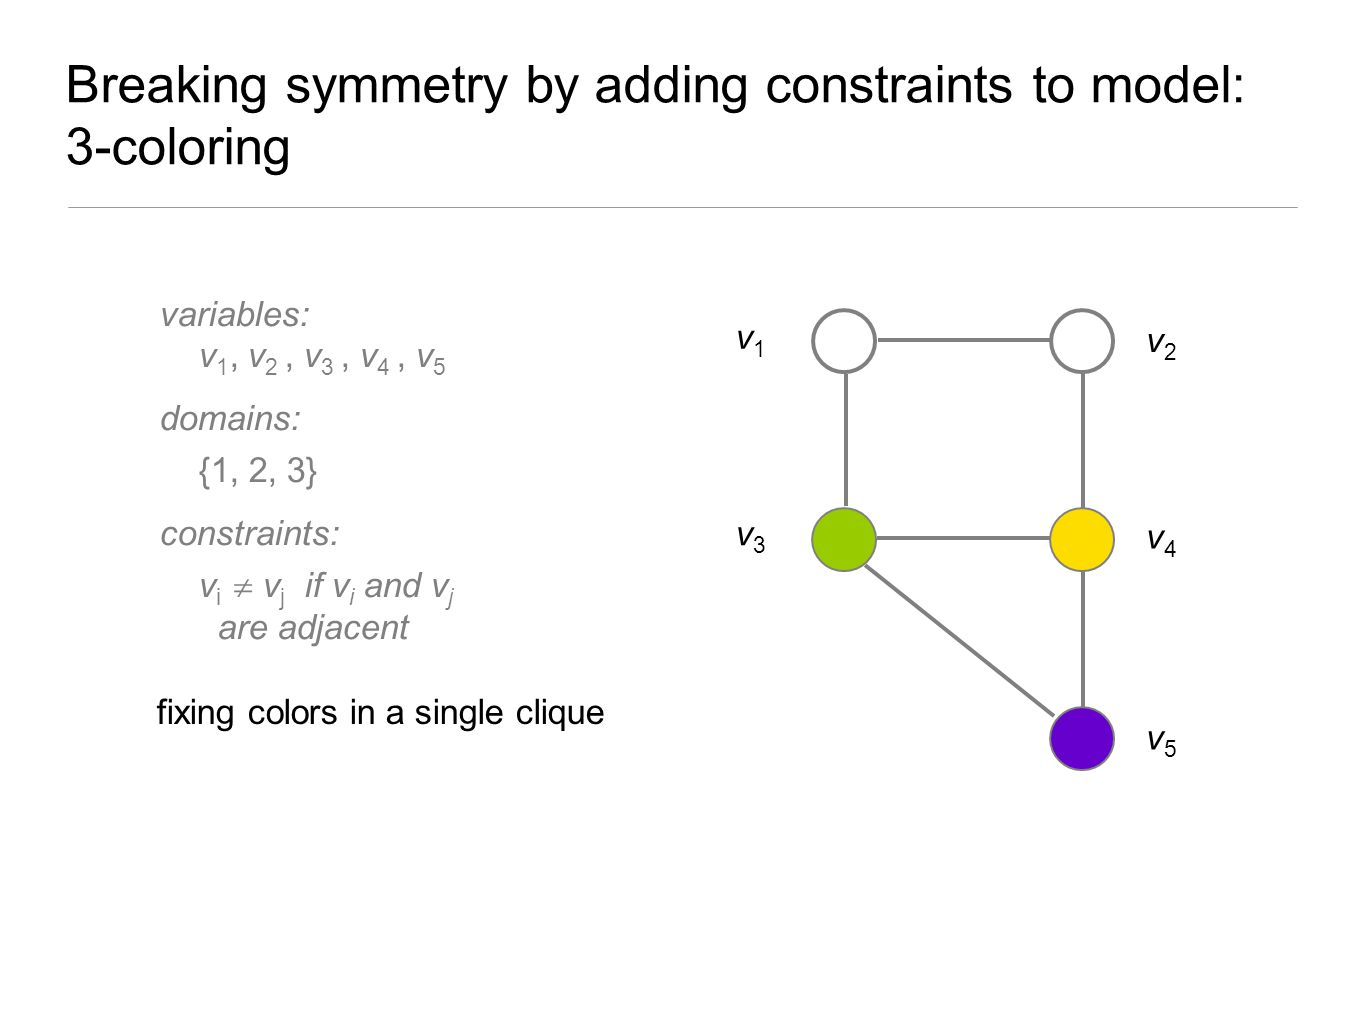 Breaking symmetry by adding constraints to model: 3-coloring